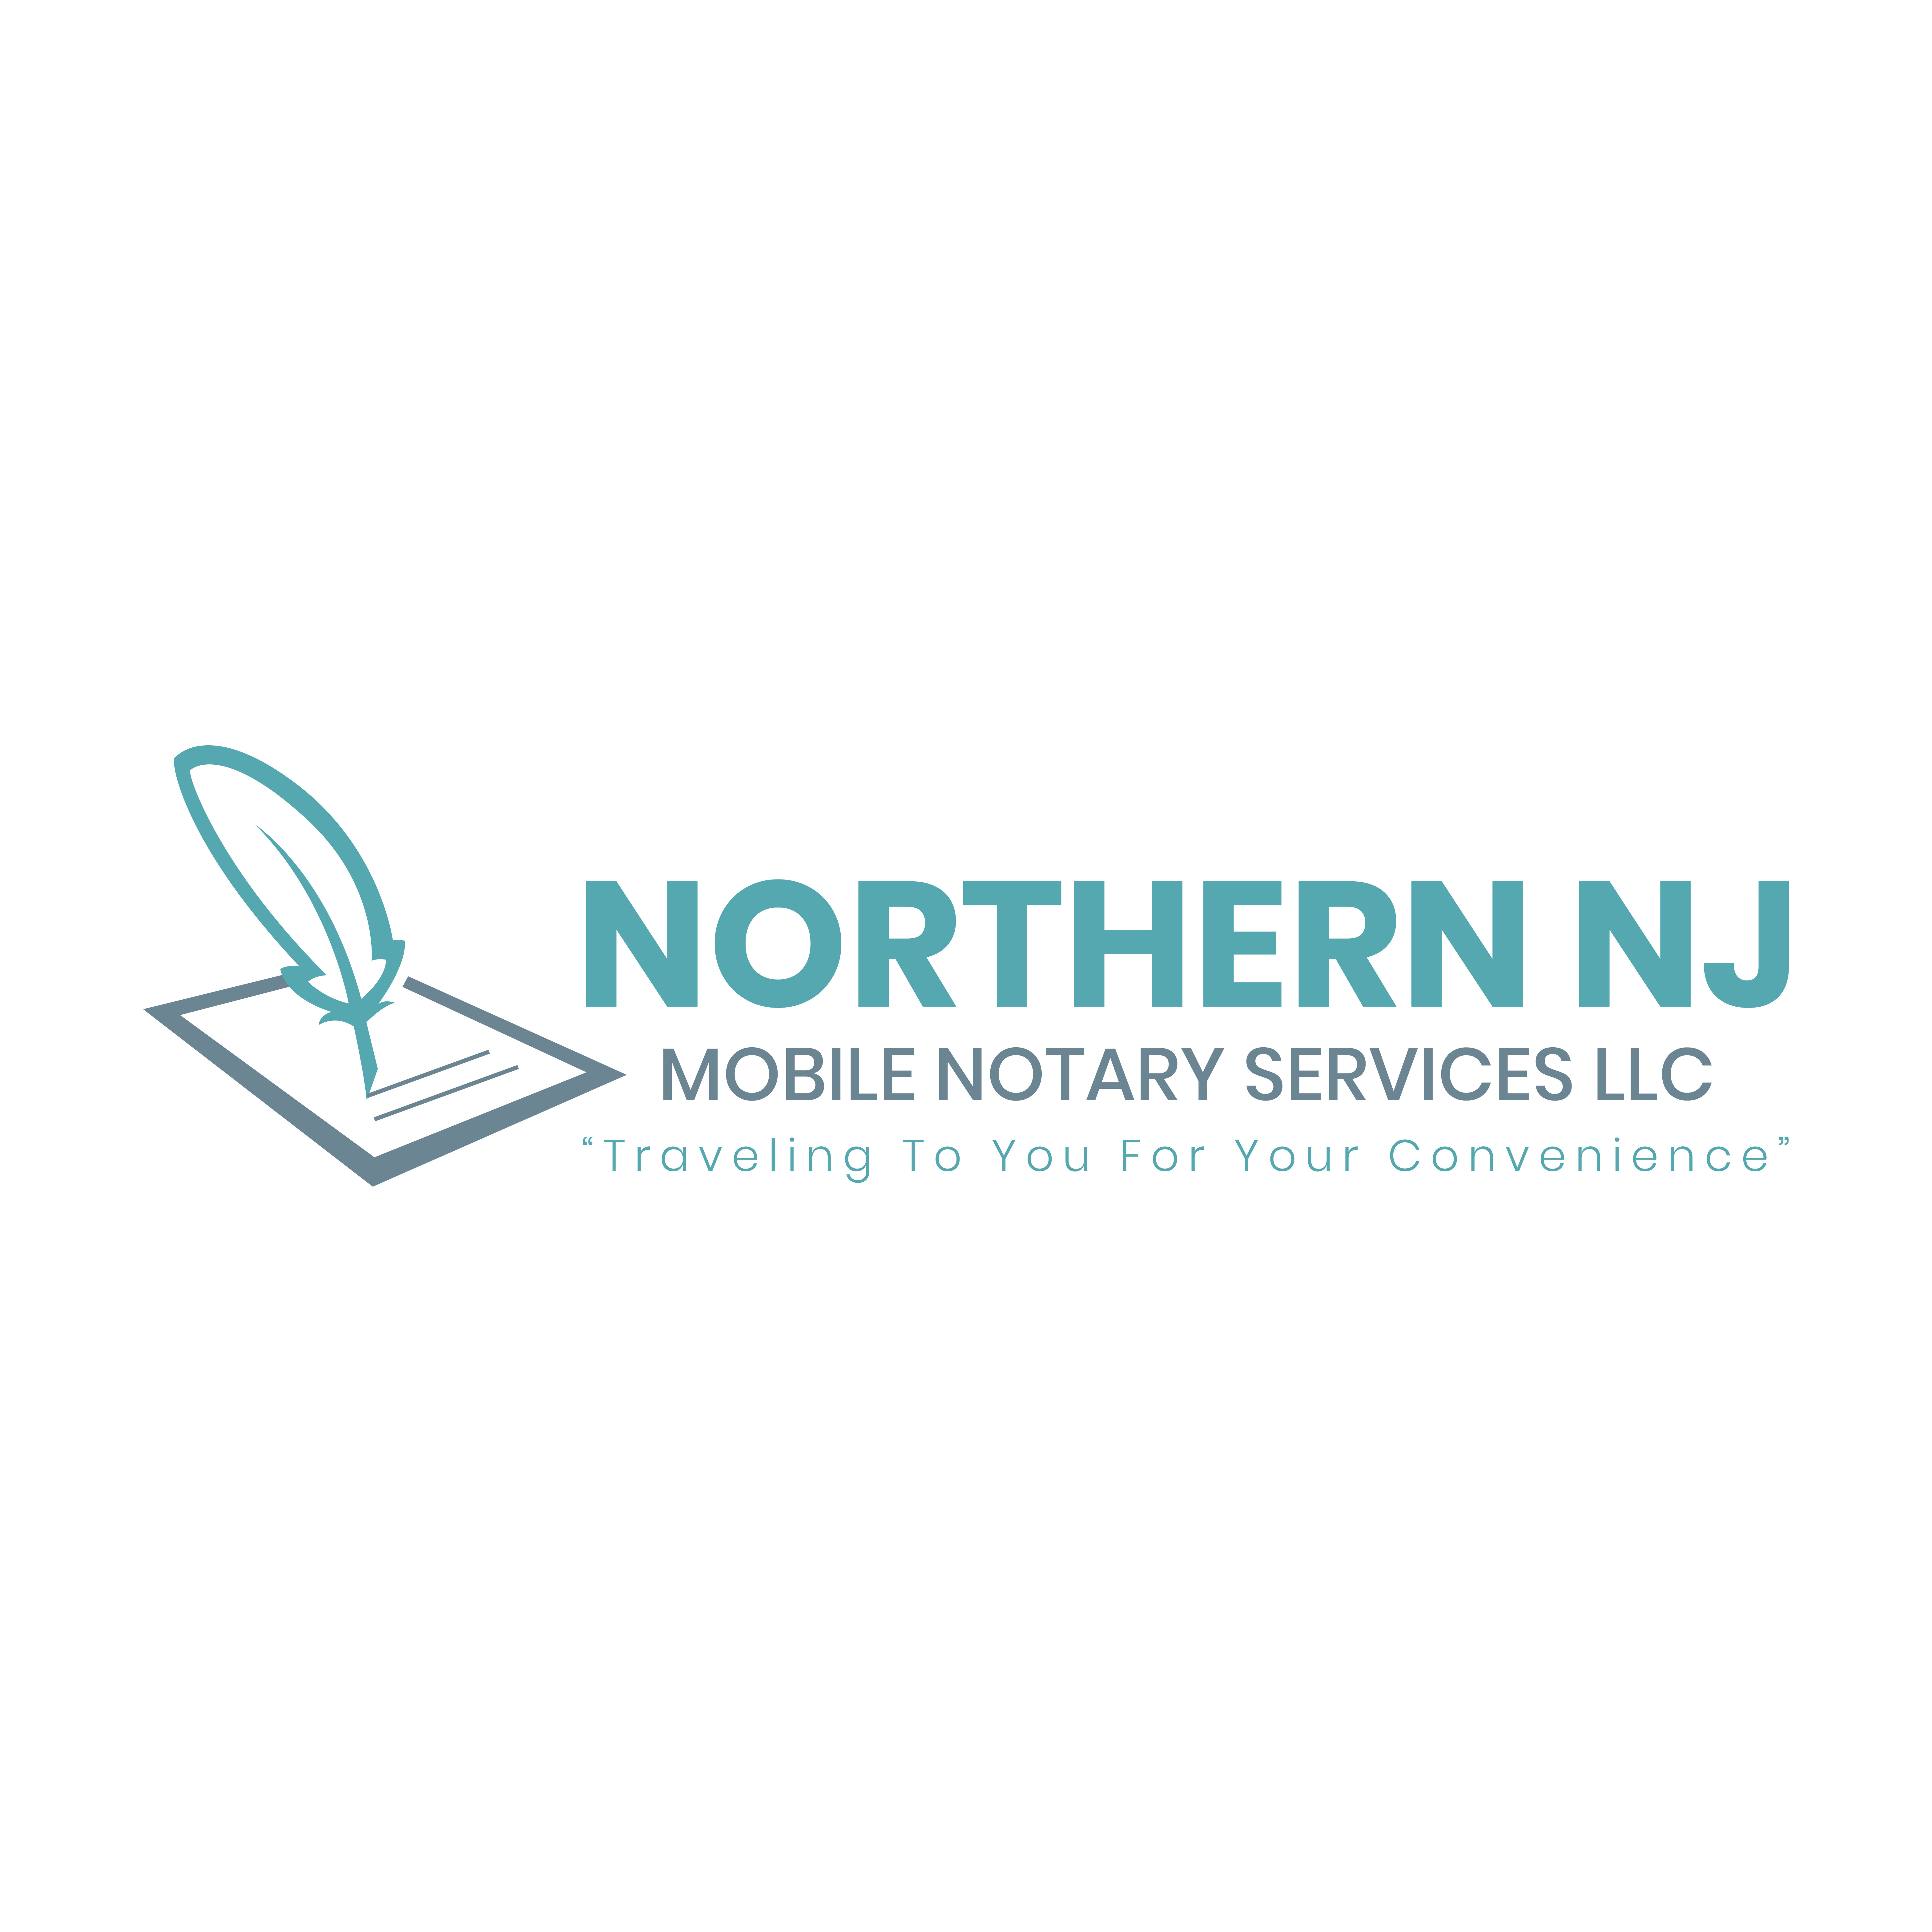 Northern NJ Mobile Notary